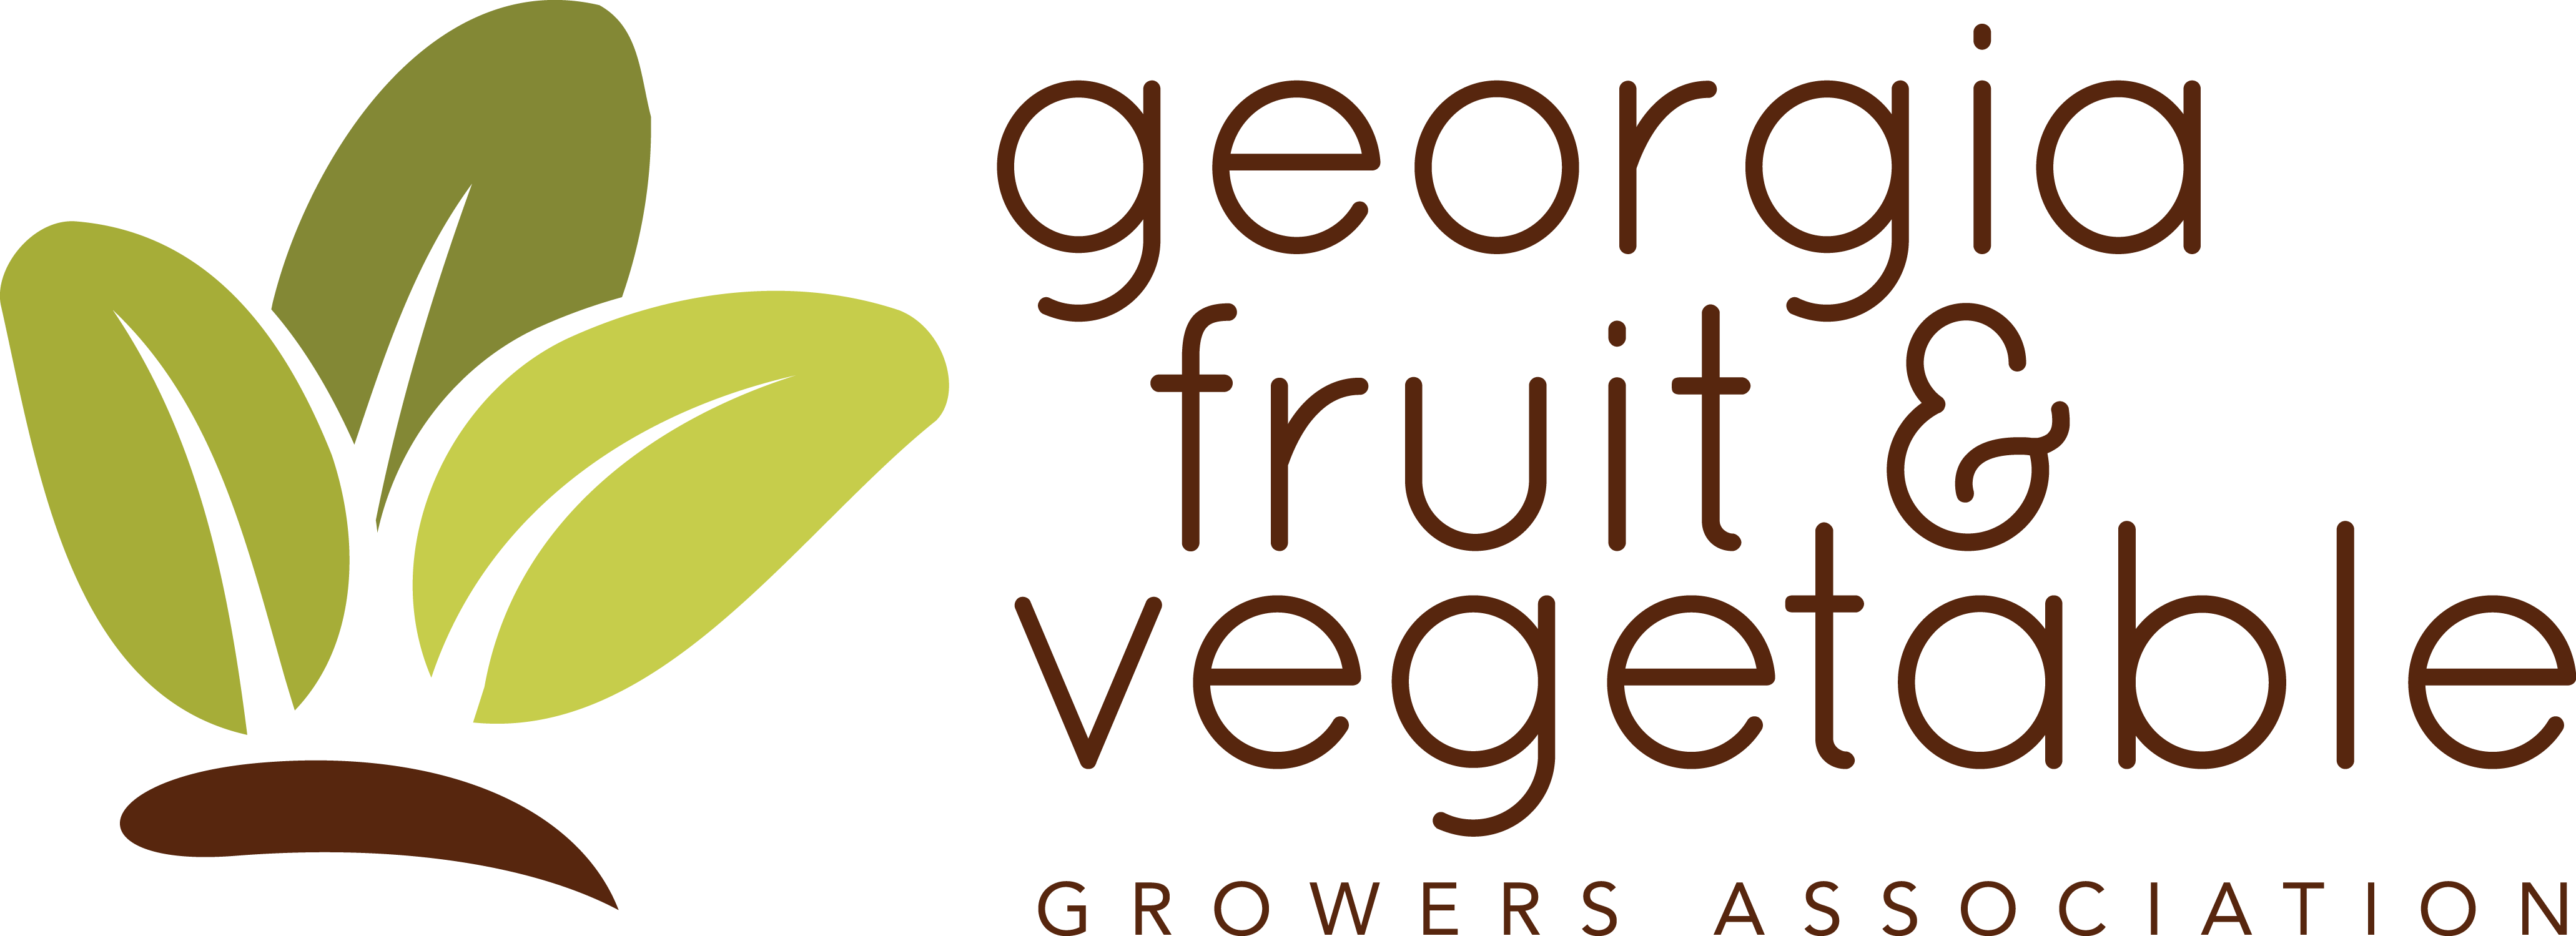 Georgia Fruit & Vegetable Growers Association